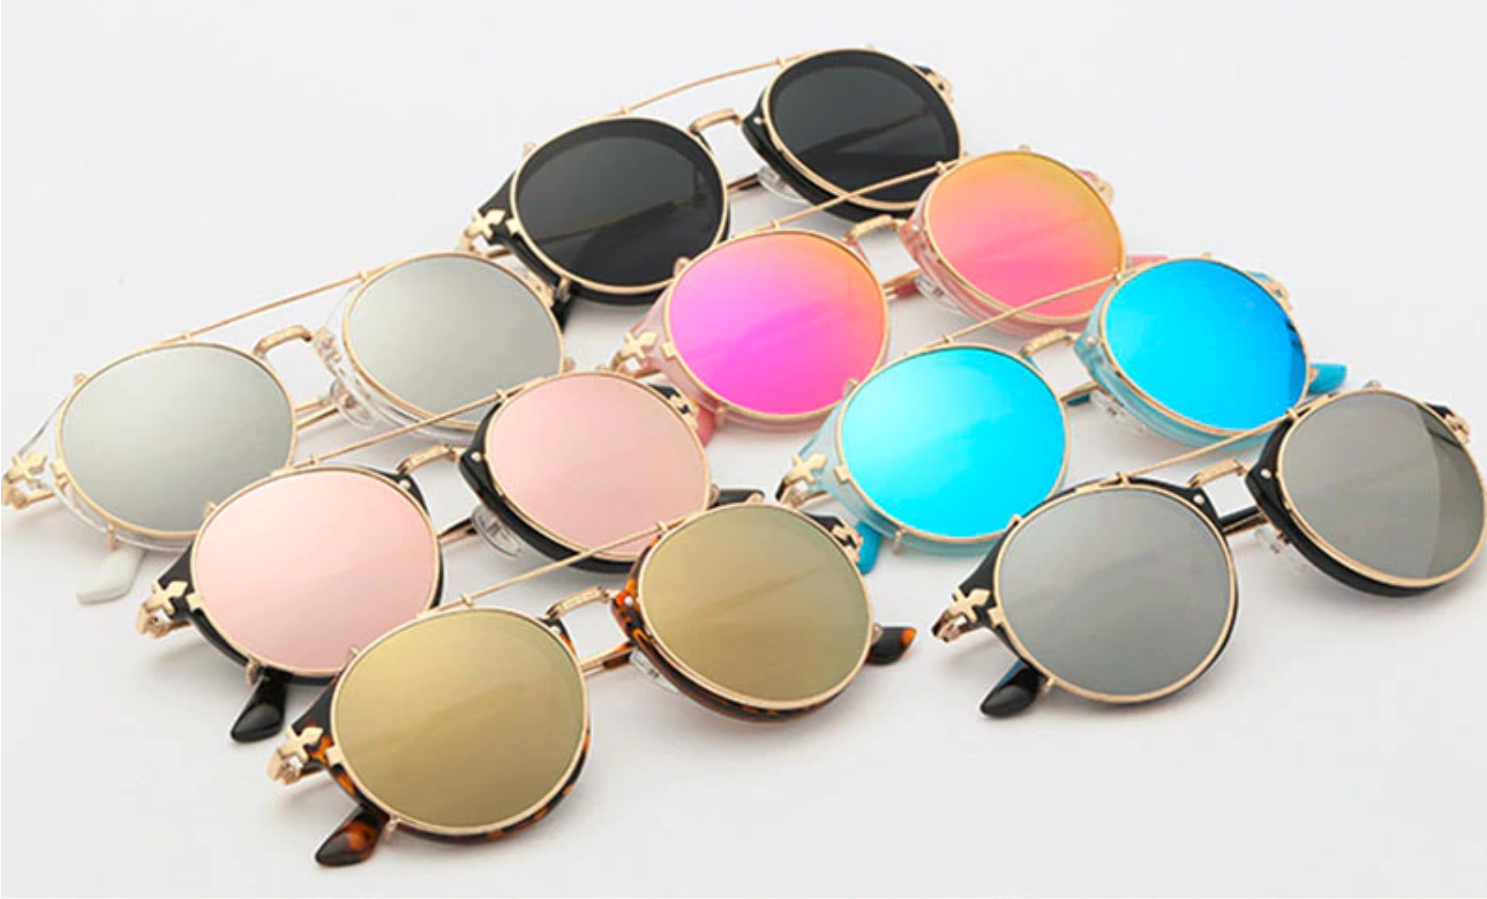 235a2f69e8 Sunglasses Vintage Women Round Steampunk Flip and separable lens ...